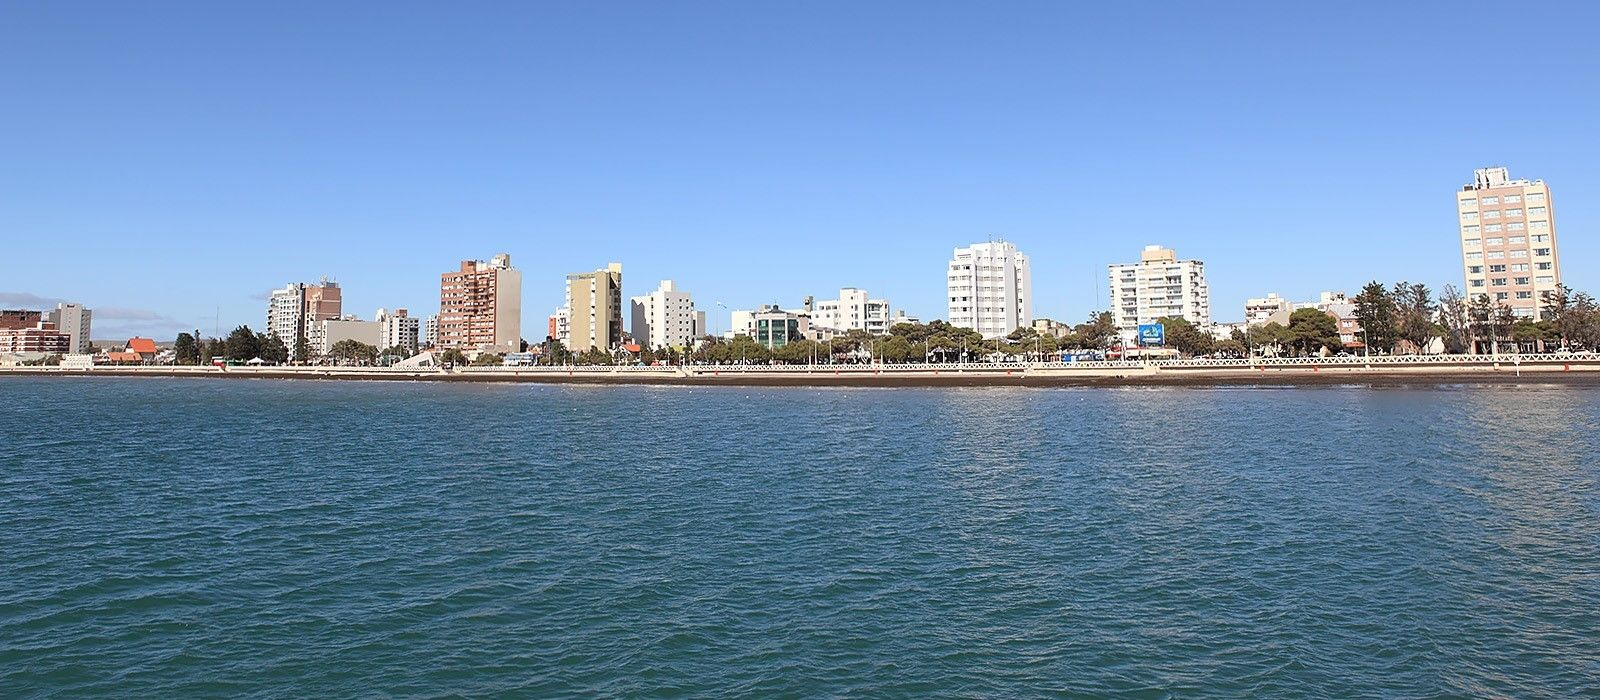 Destination Puerto Madryn Argentina